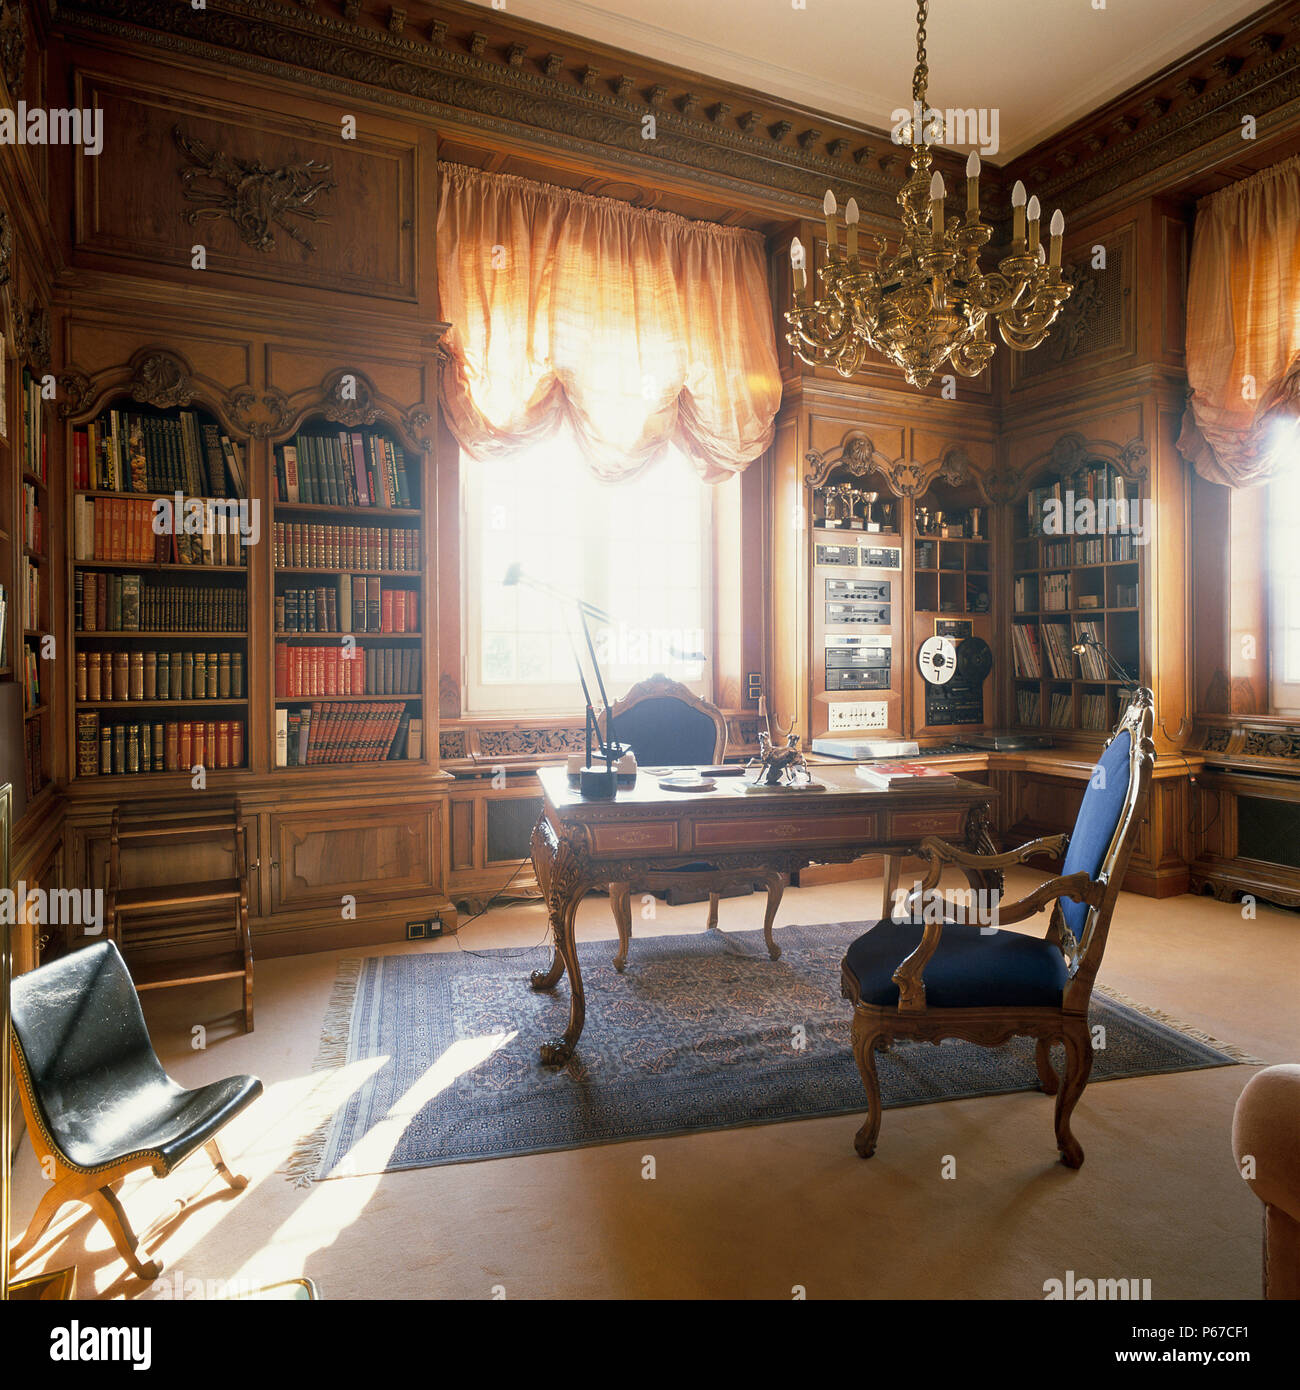 Eclectic home office Rustic View Of An Eclectic Home Office Alamy View Of An Eclectic Home Office Stock Photo 210375845 Alamy